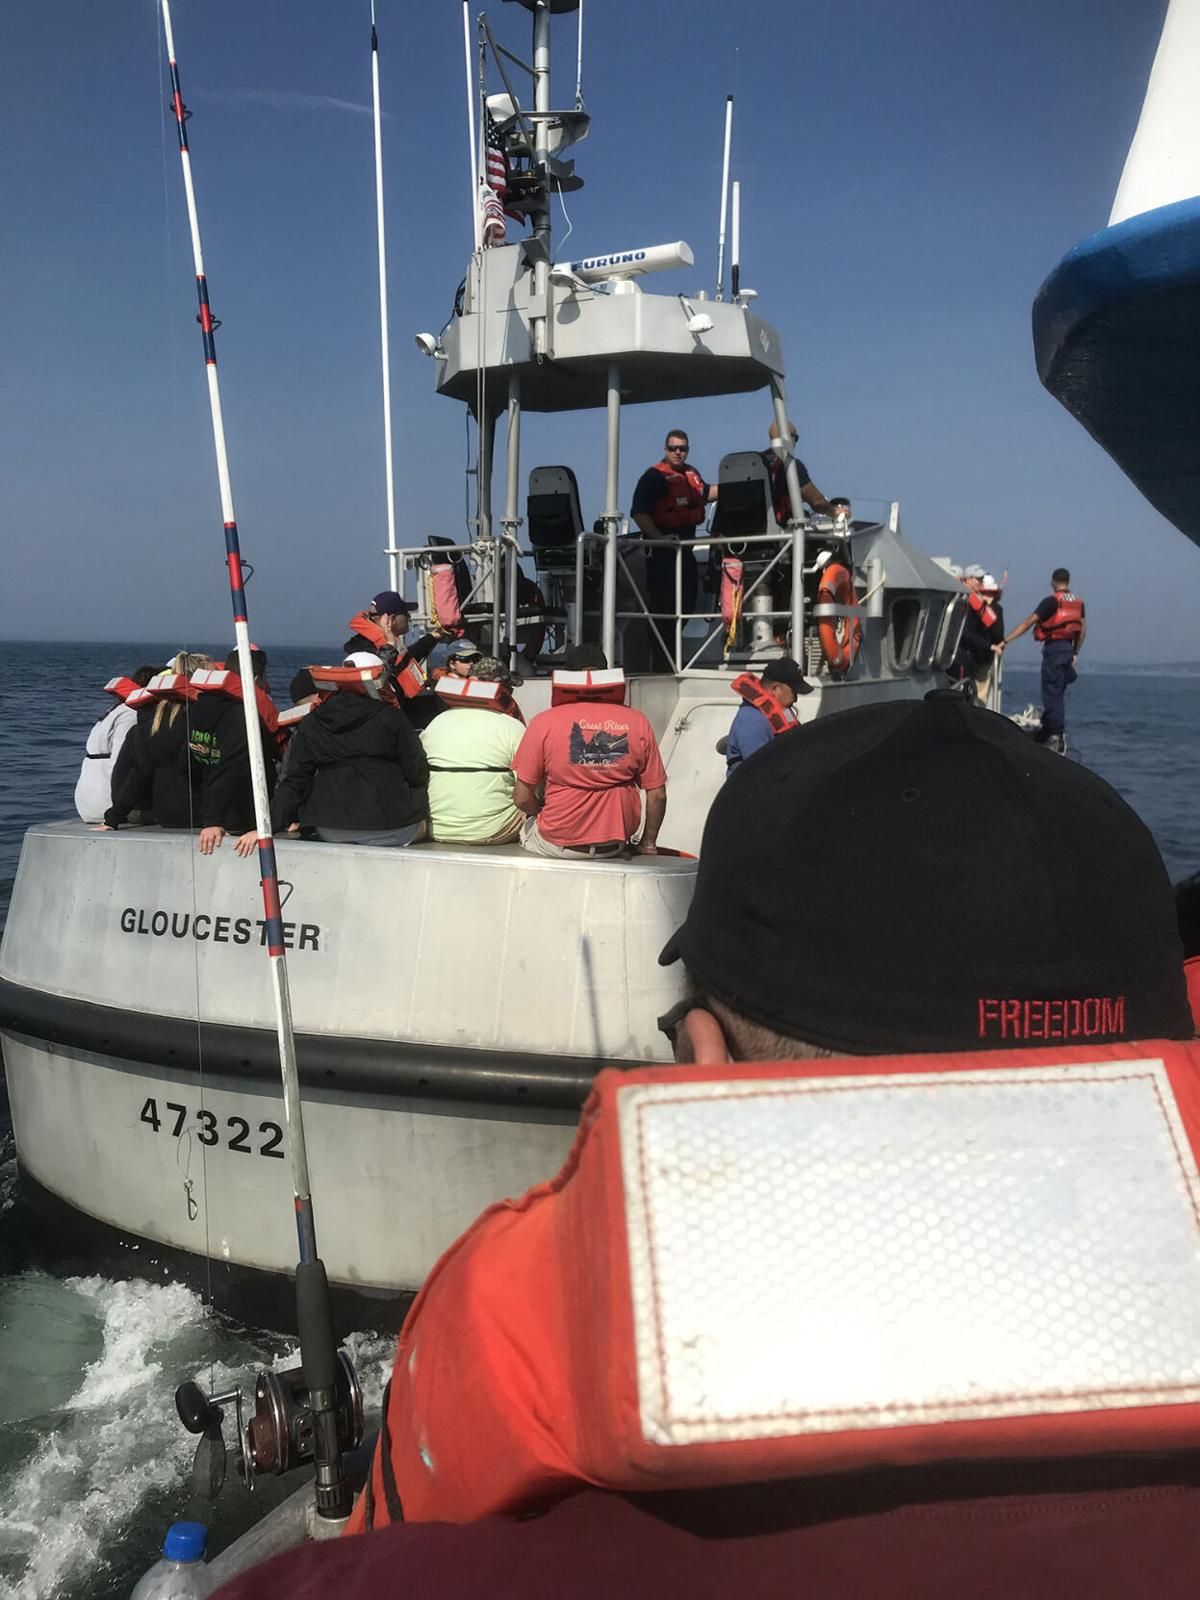 UPDATE II: 40 pulled off charter boat after engine mishap